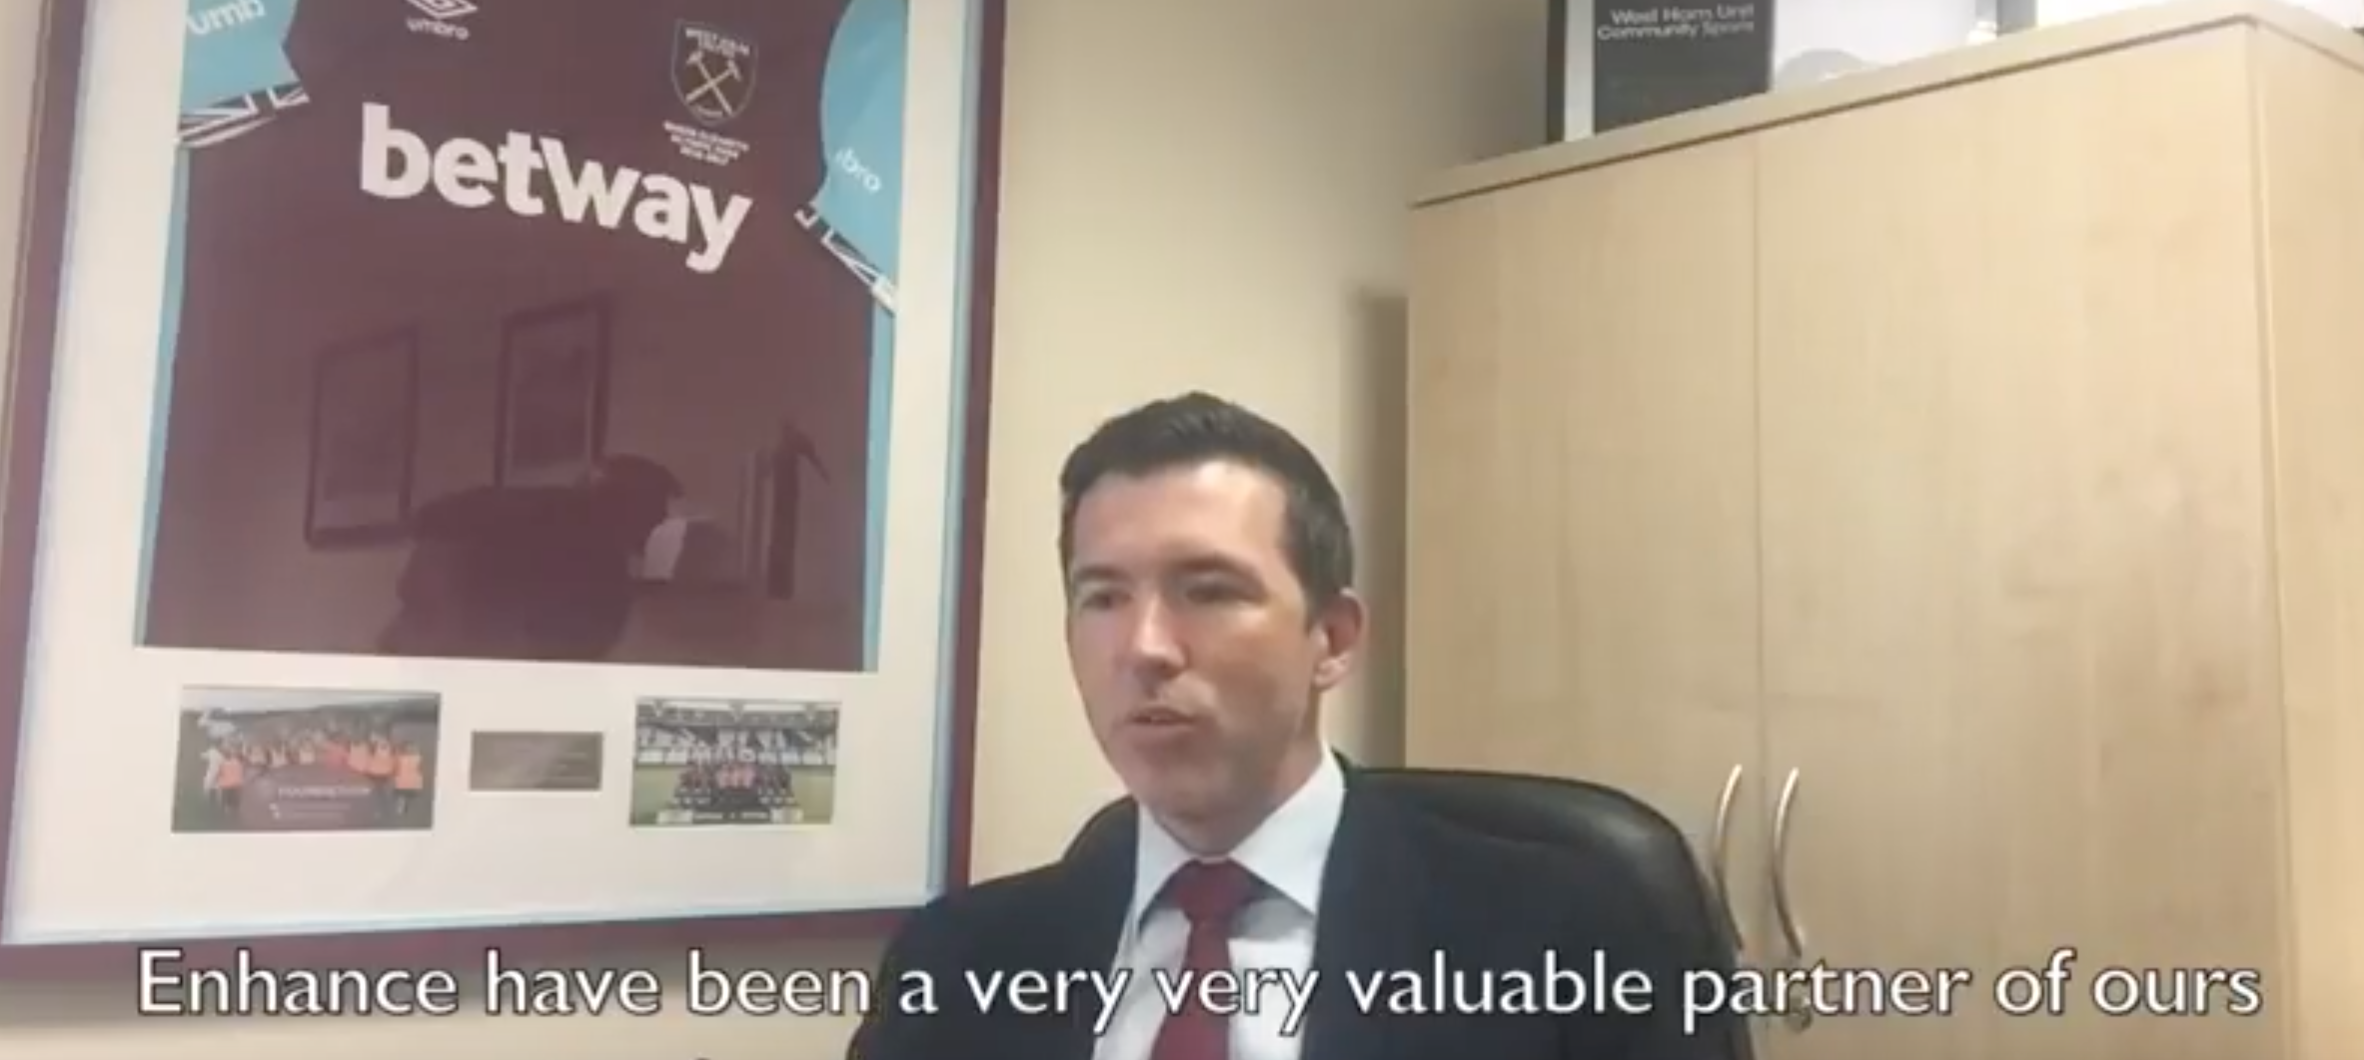 A screen shot of a member of the west ham foundation speaking about his experience working with Enhance the uk